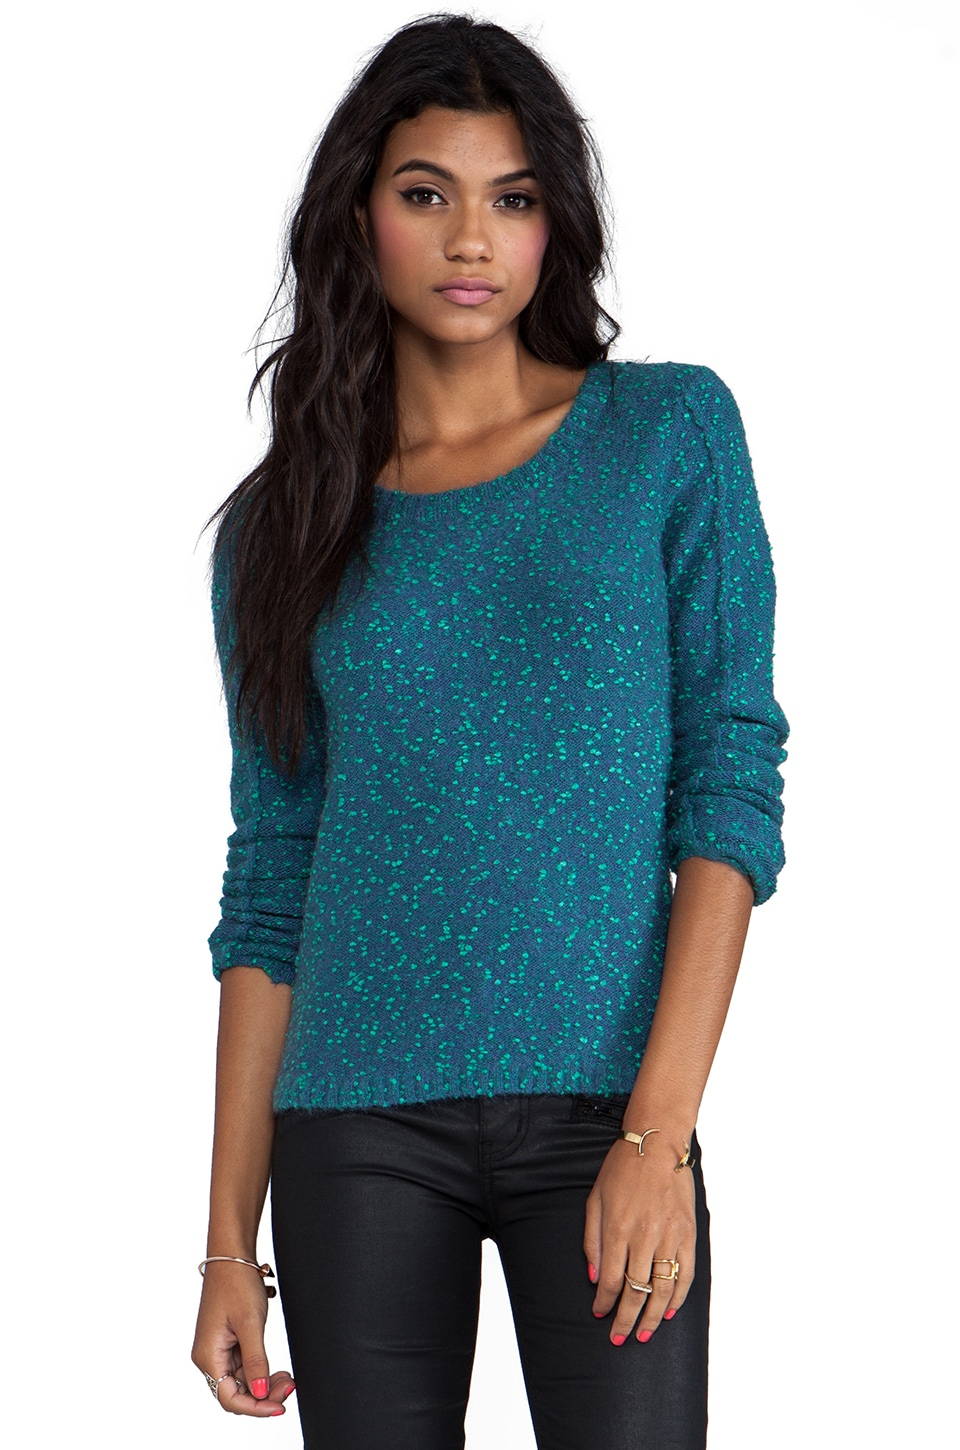 Nanette Lepore Ozone Knits Big Dipper Sweater in Steel Blue